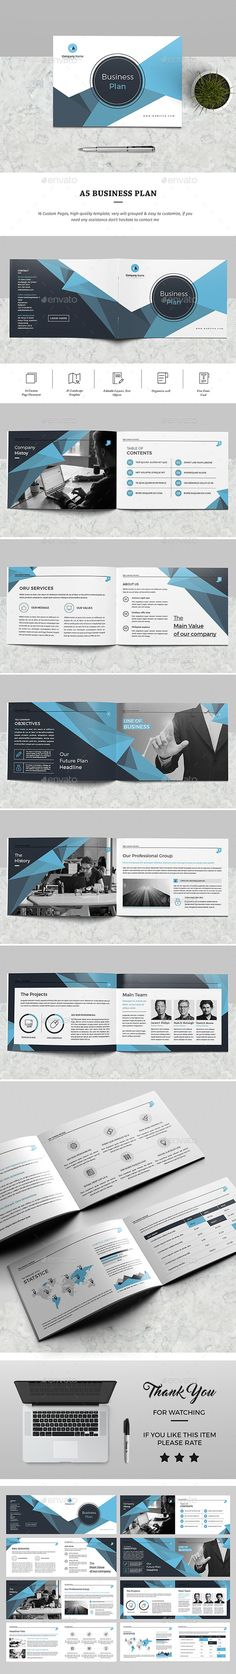 A5 Business — InDesign INDD #minimal #brochure design • Download ➝ https://graphicriver.net/item/a5-business/19395880?ref=pxcr